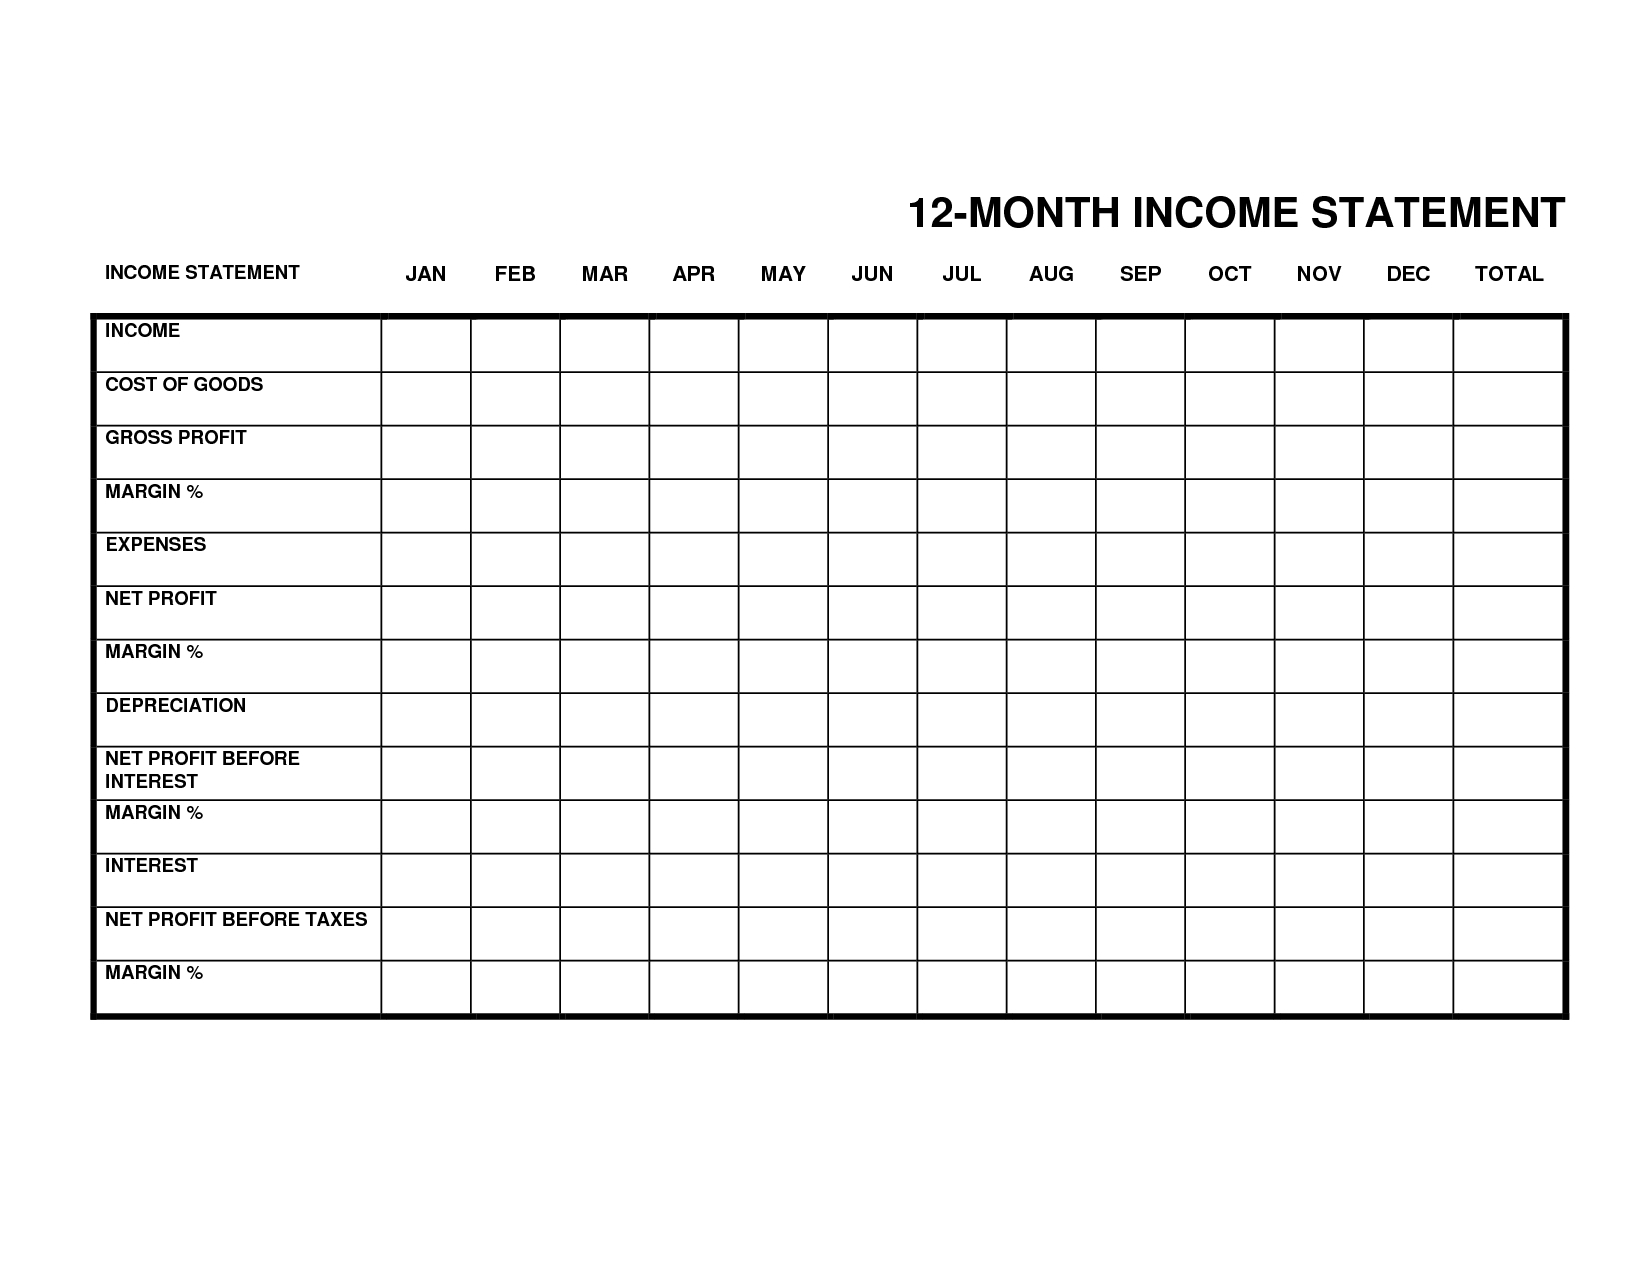 Monthly Income Statement Template Excel - Resourcesaver Intended For Income Statement Template In Excel